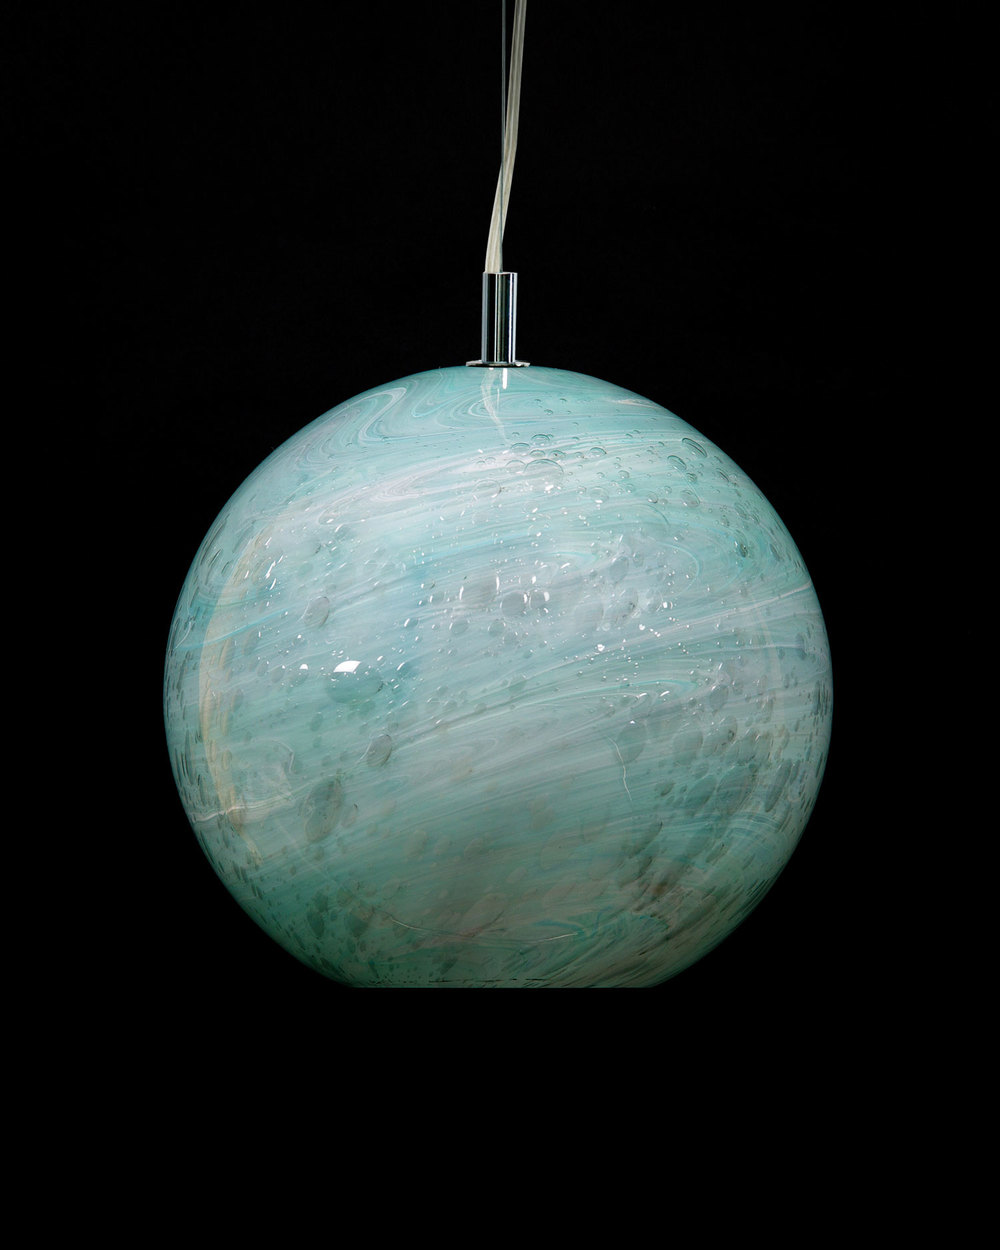 space-uranus-b.jpg